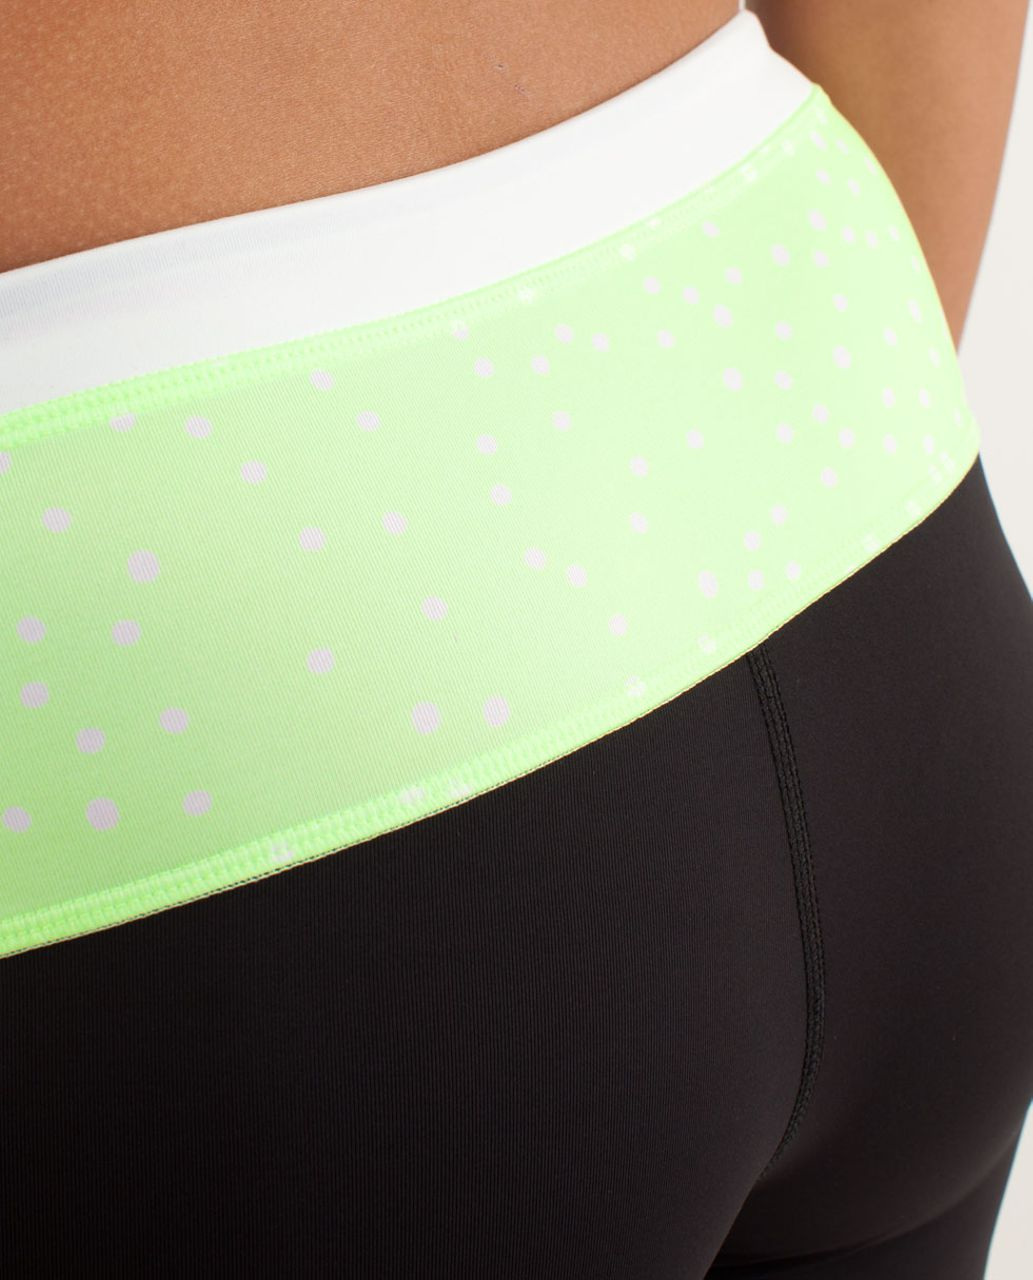 Lululemon Run:  Proceed With Speed Crop - Black / Faded Zap / White